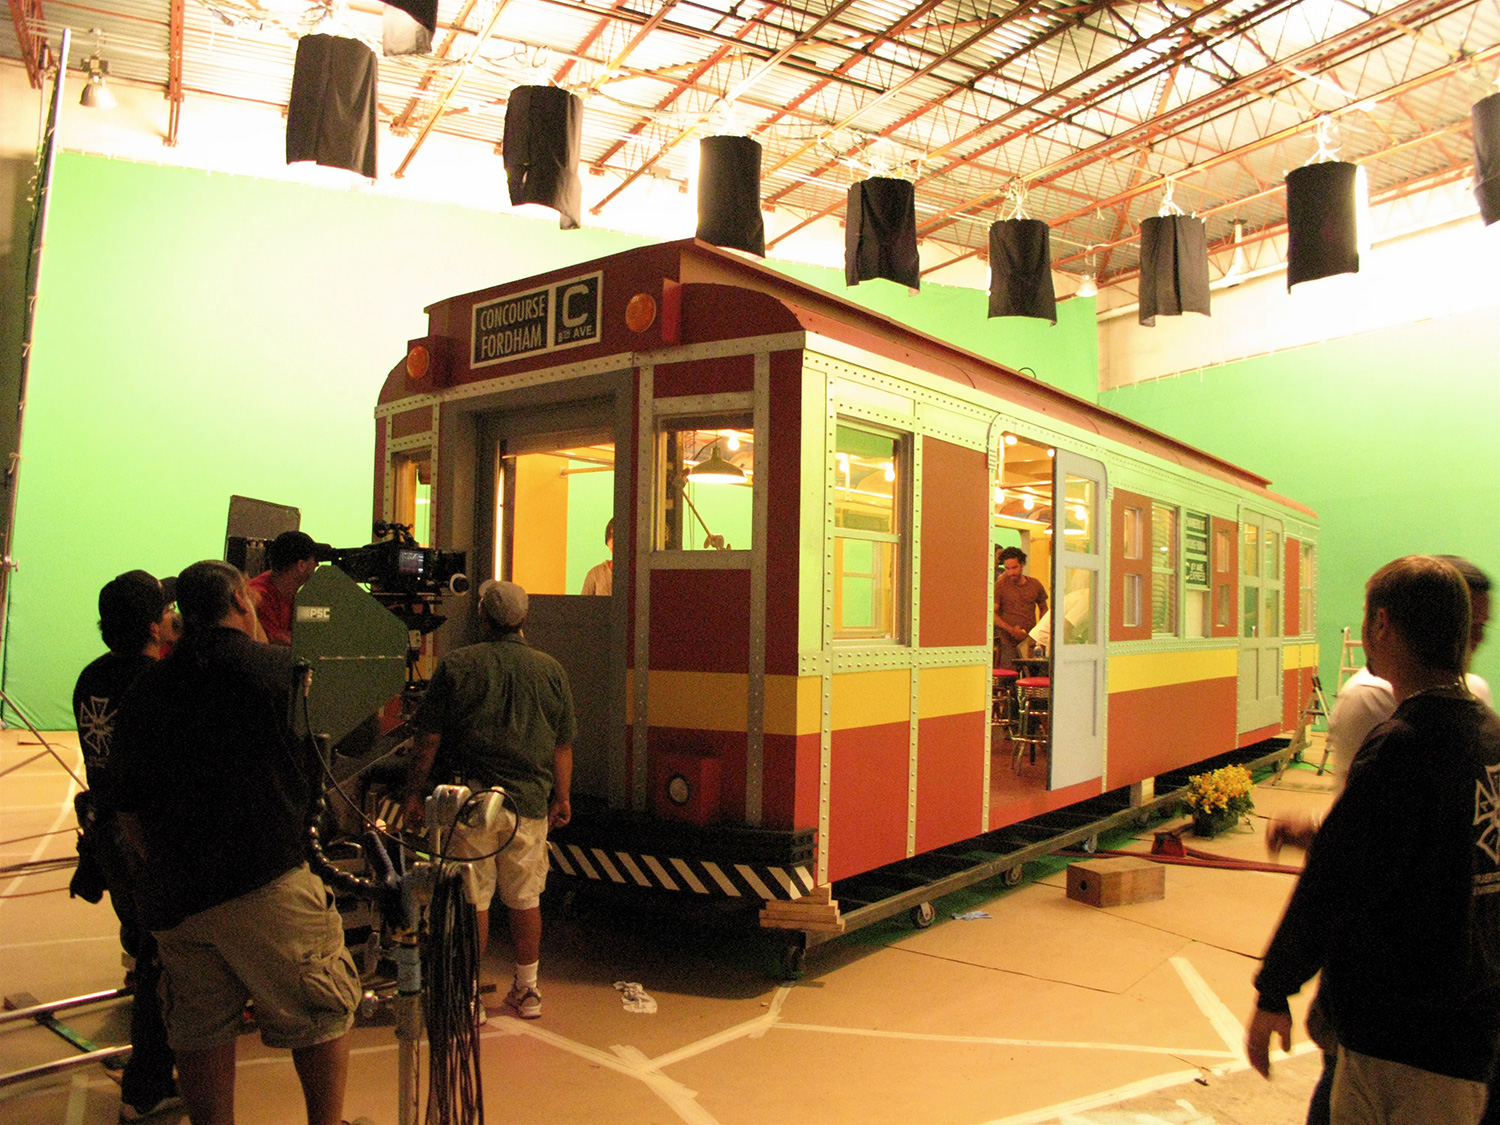 Here is the detached subway-dining car being shot in it's runaway train sequence.